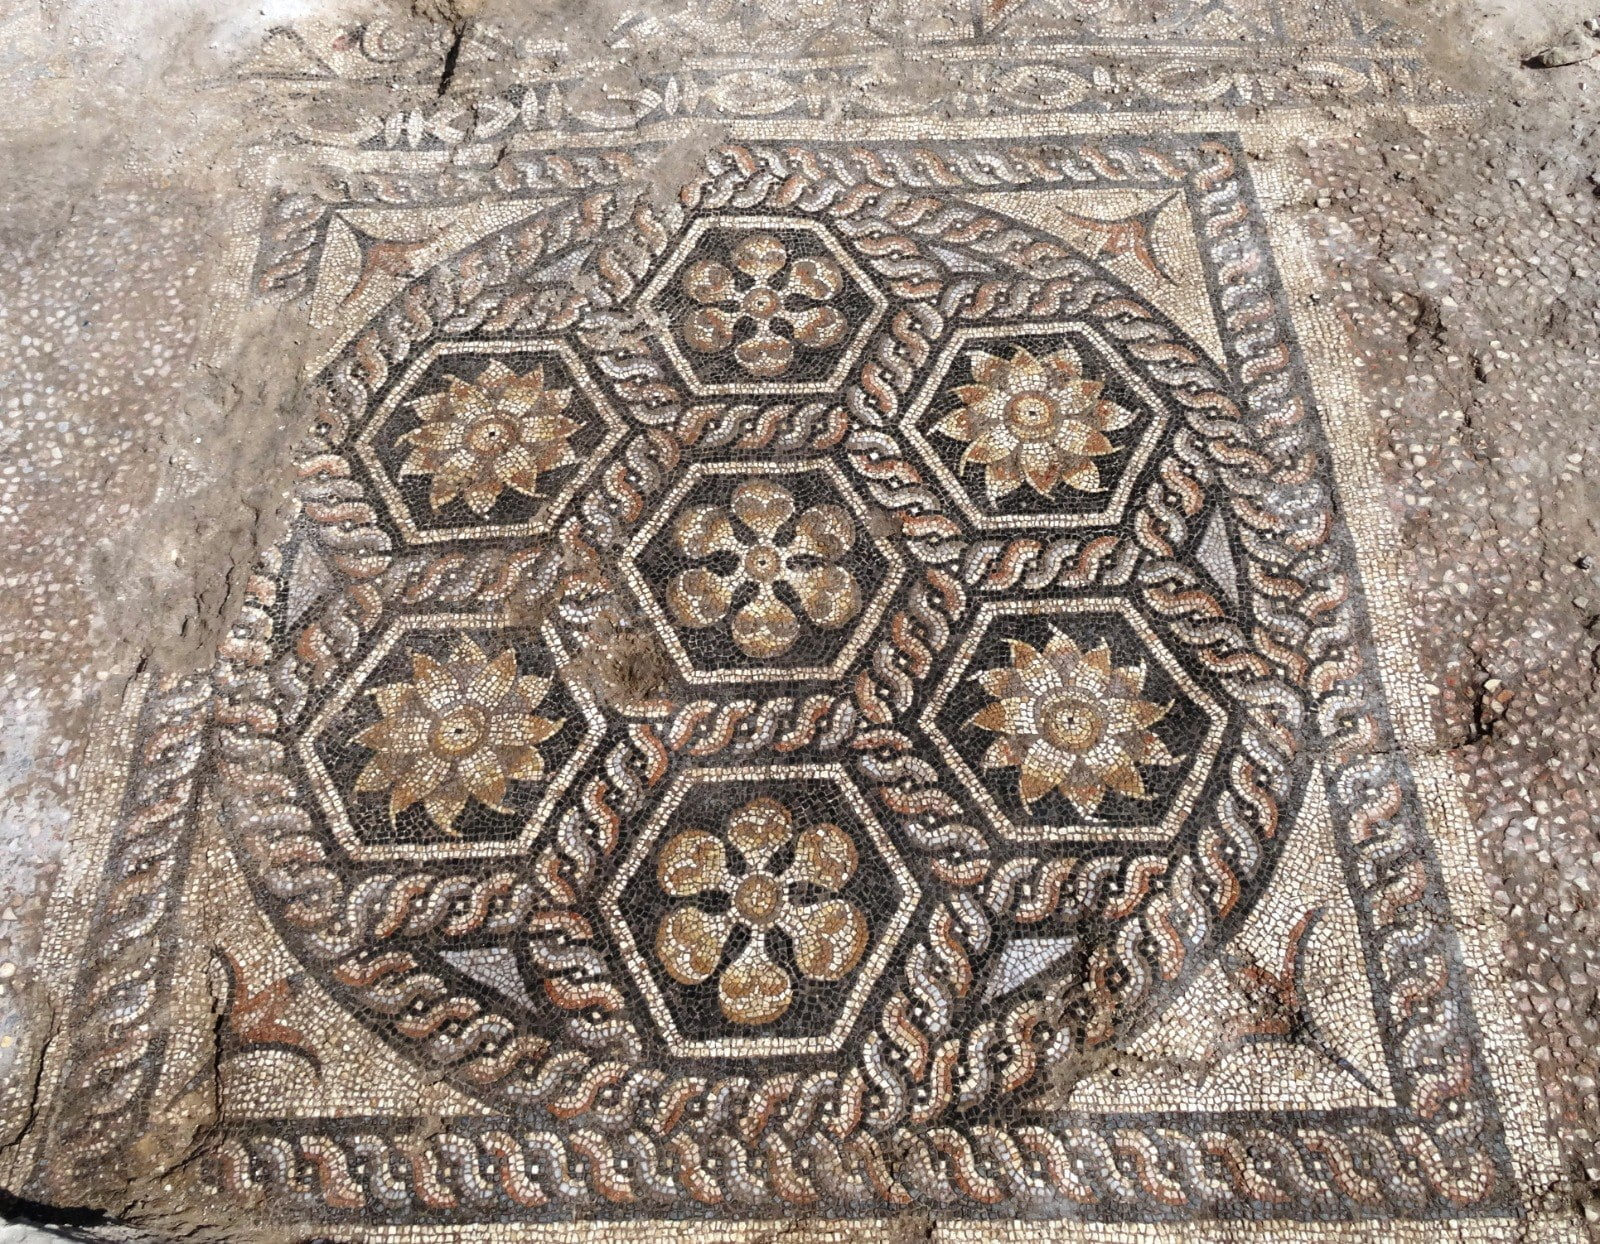 Roman mosaic was discovered in mosaic